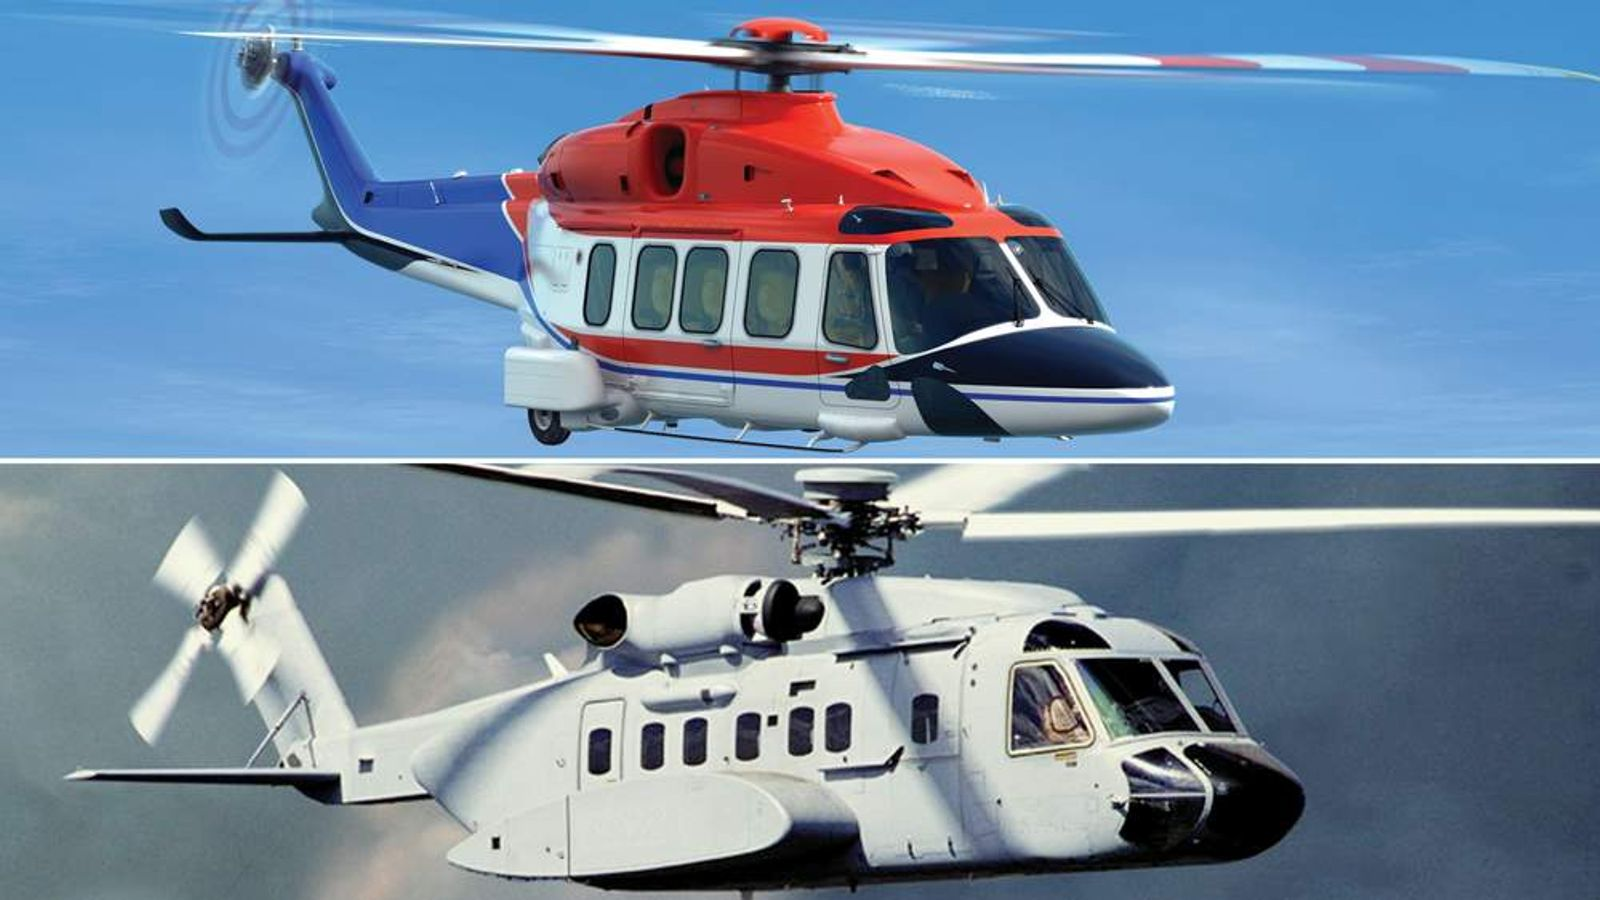 The AgustaWestland AW189 (top) and the Sikorsky S-96 (bottom)